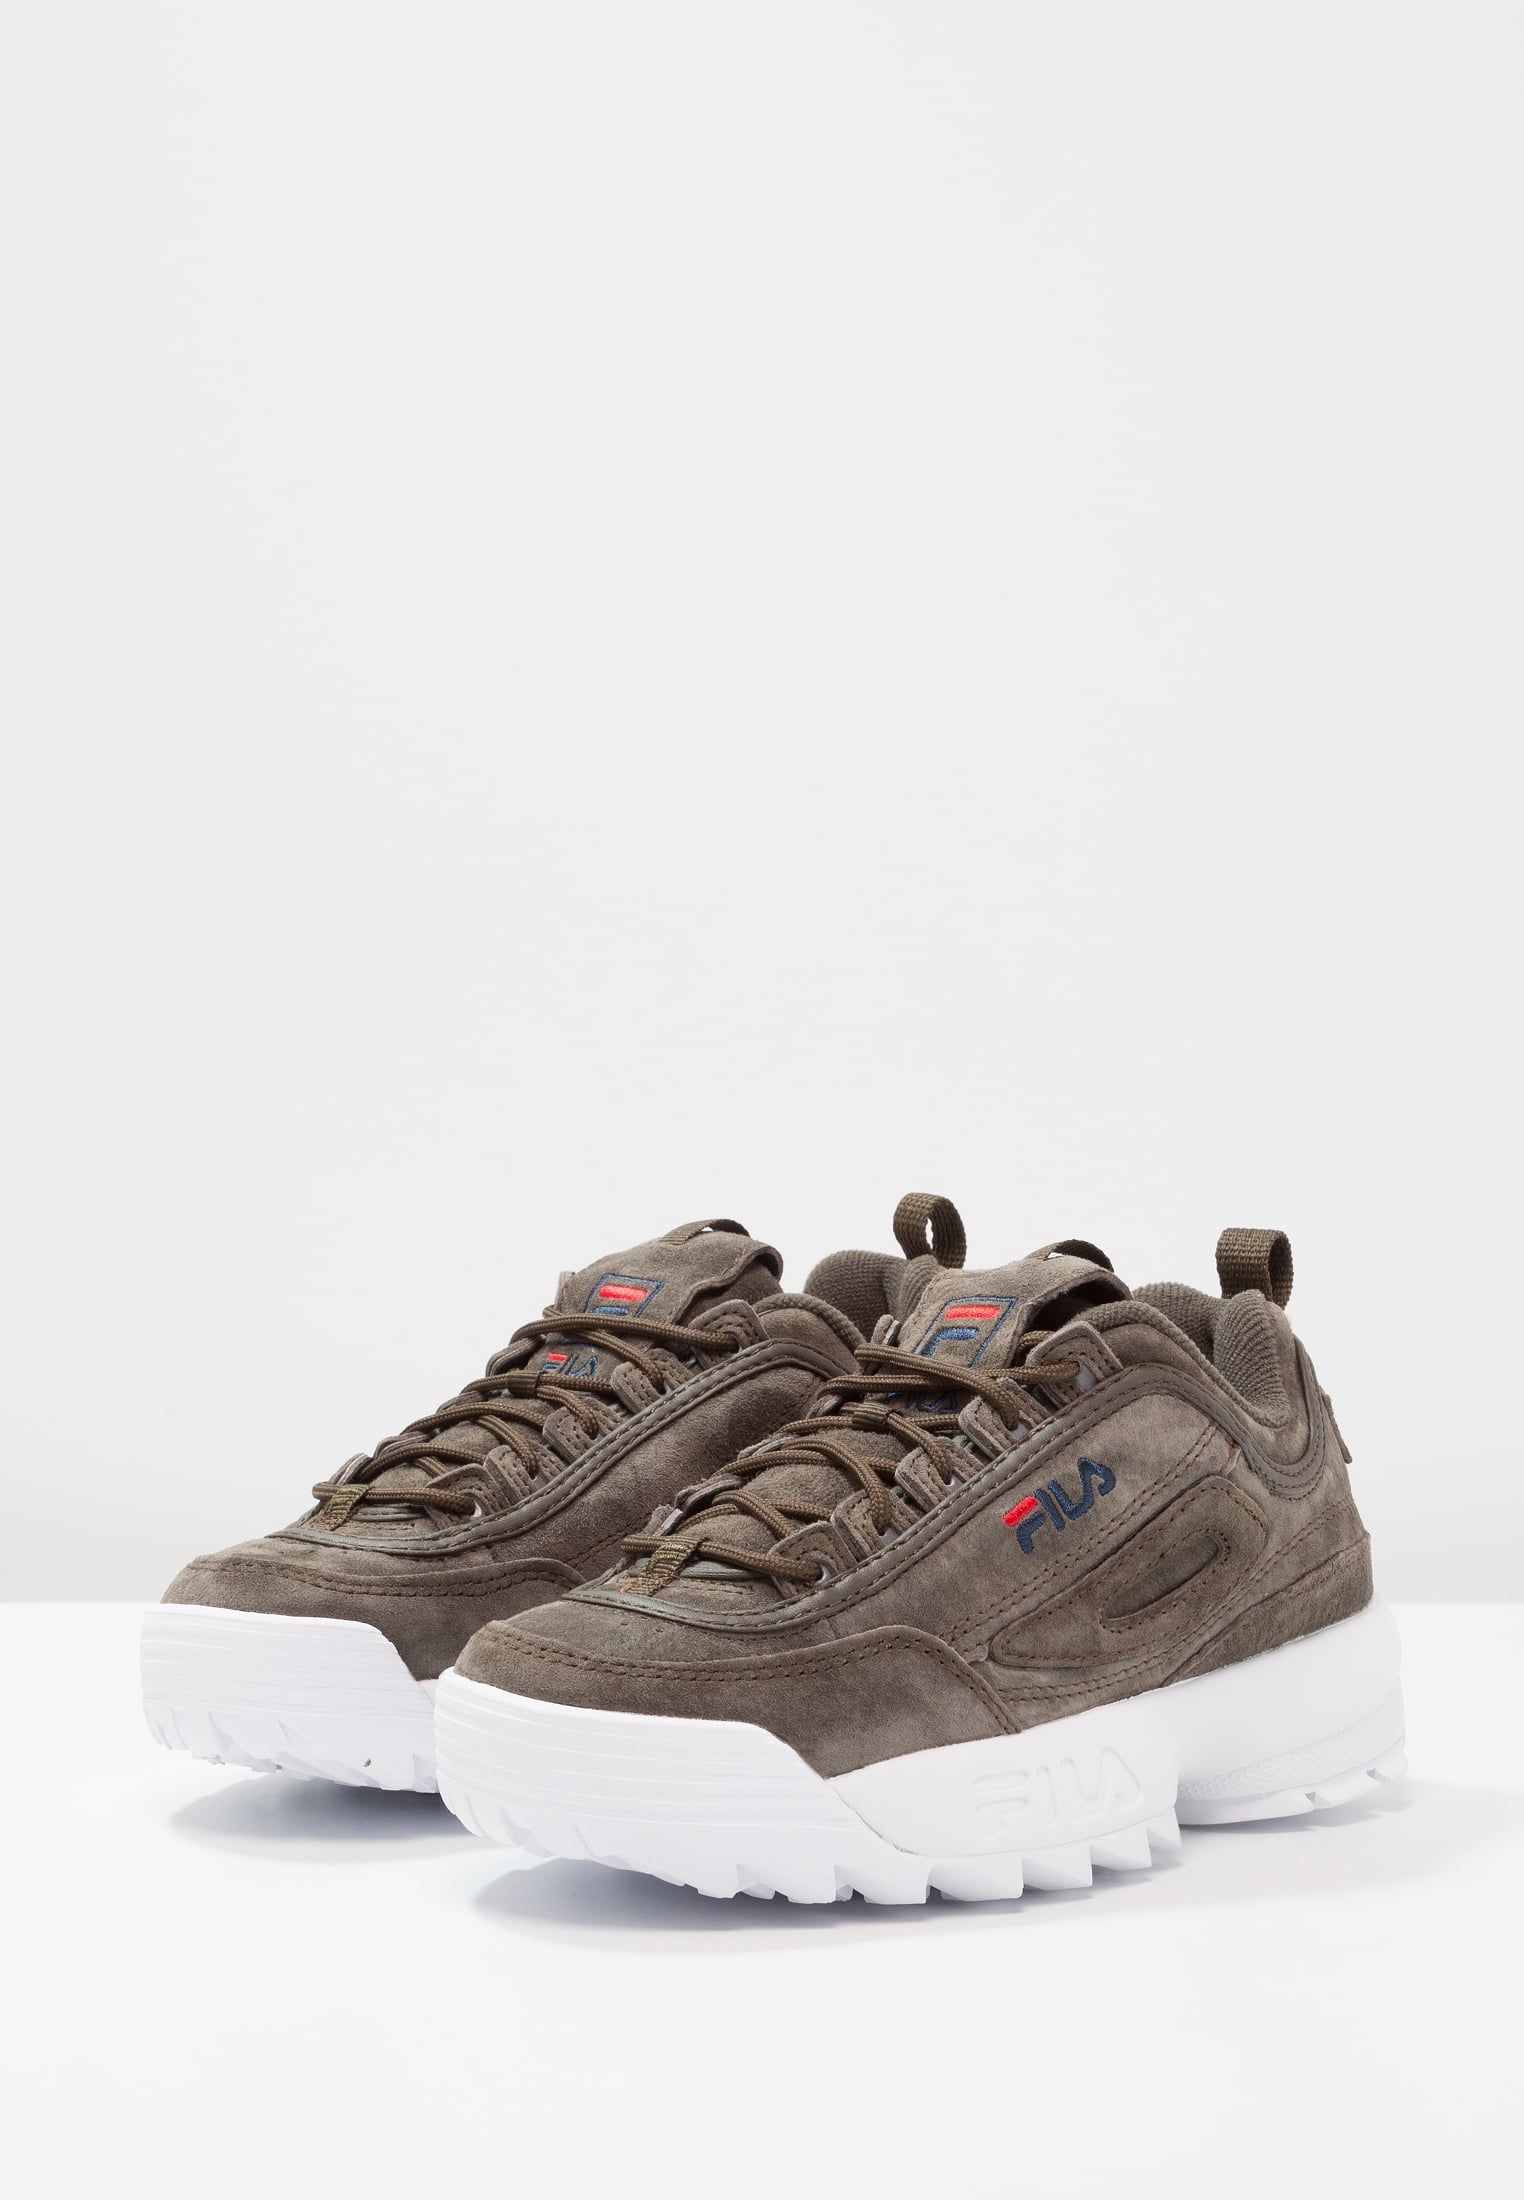 free shipping 05713 0cf11 Sneakers women - Fila Disruptor